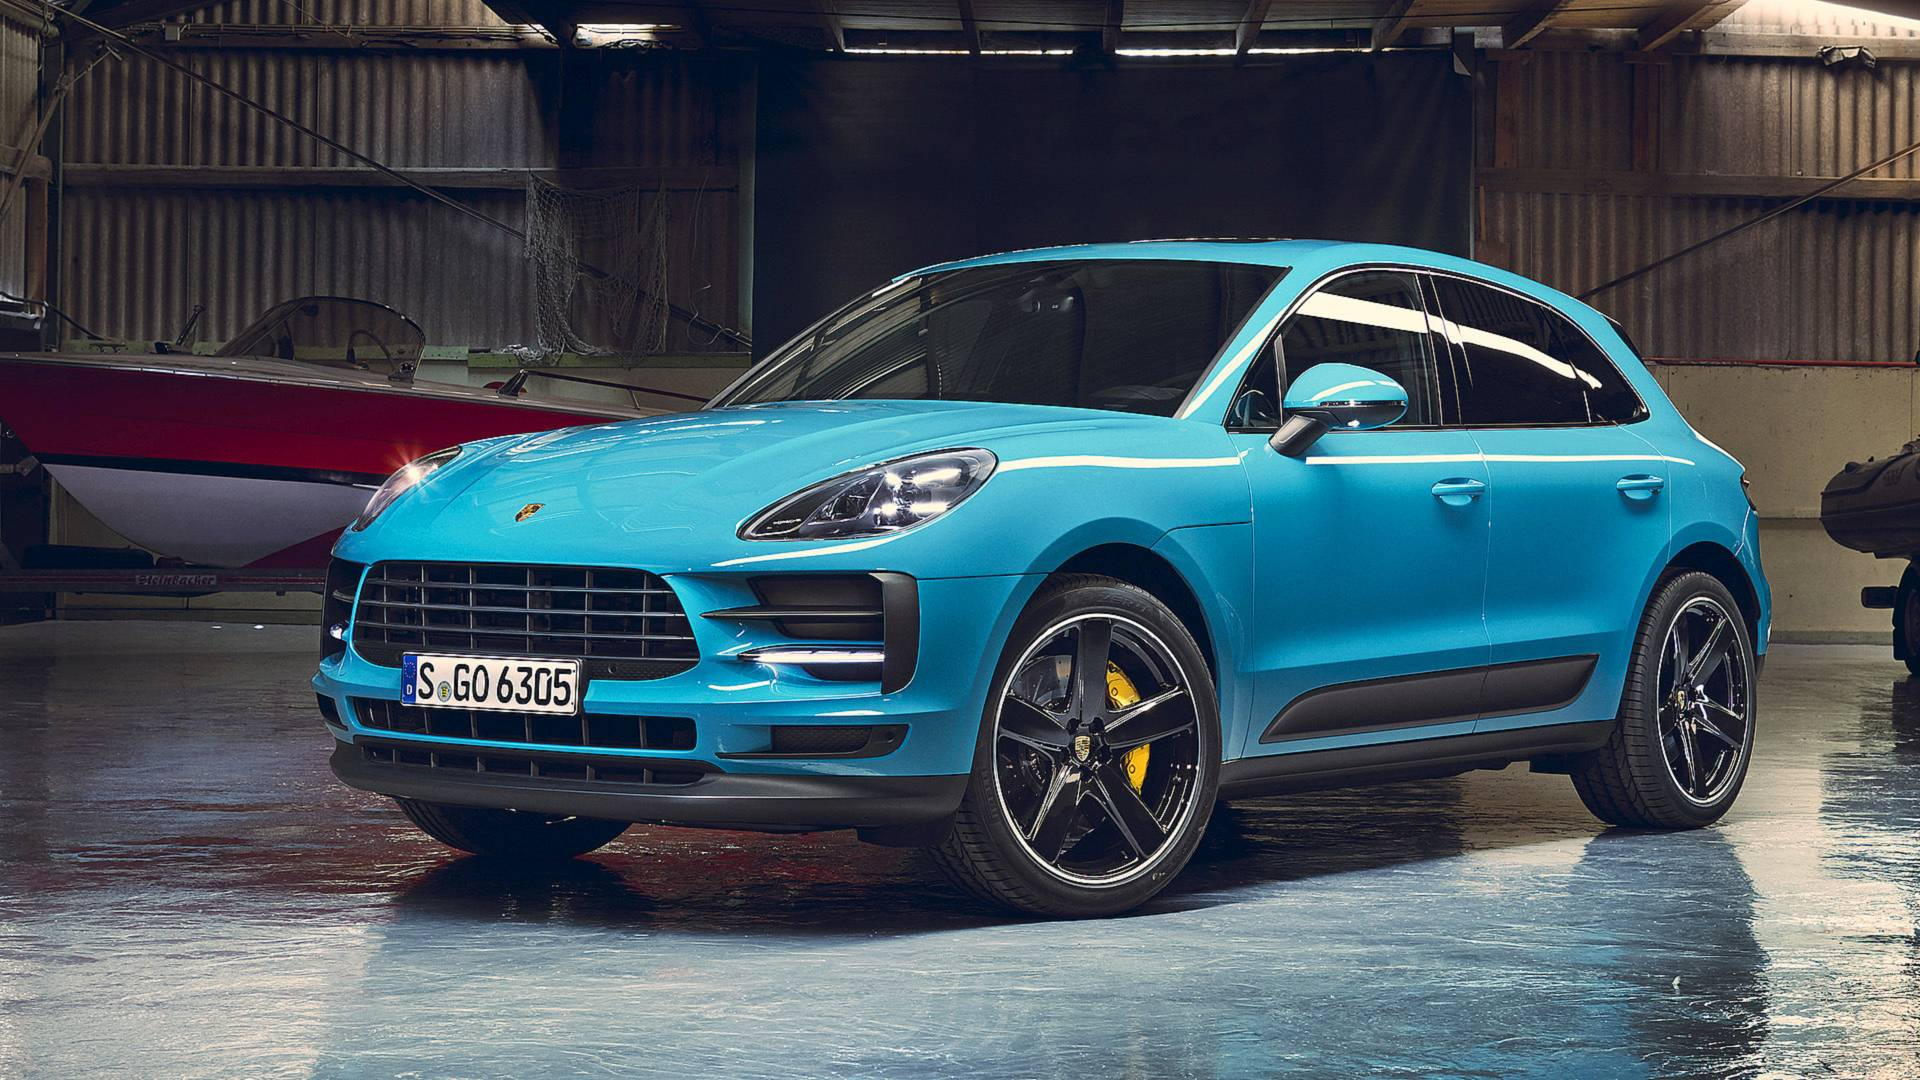 Картинки по запросу Updated 2019 New Porsche Macan: Specifications, Interior